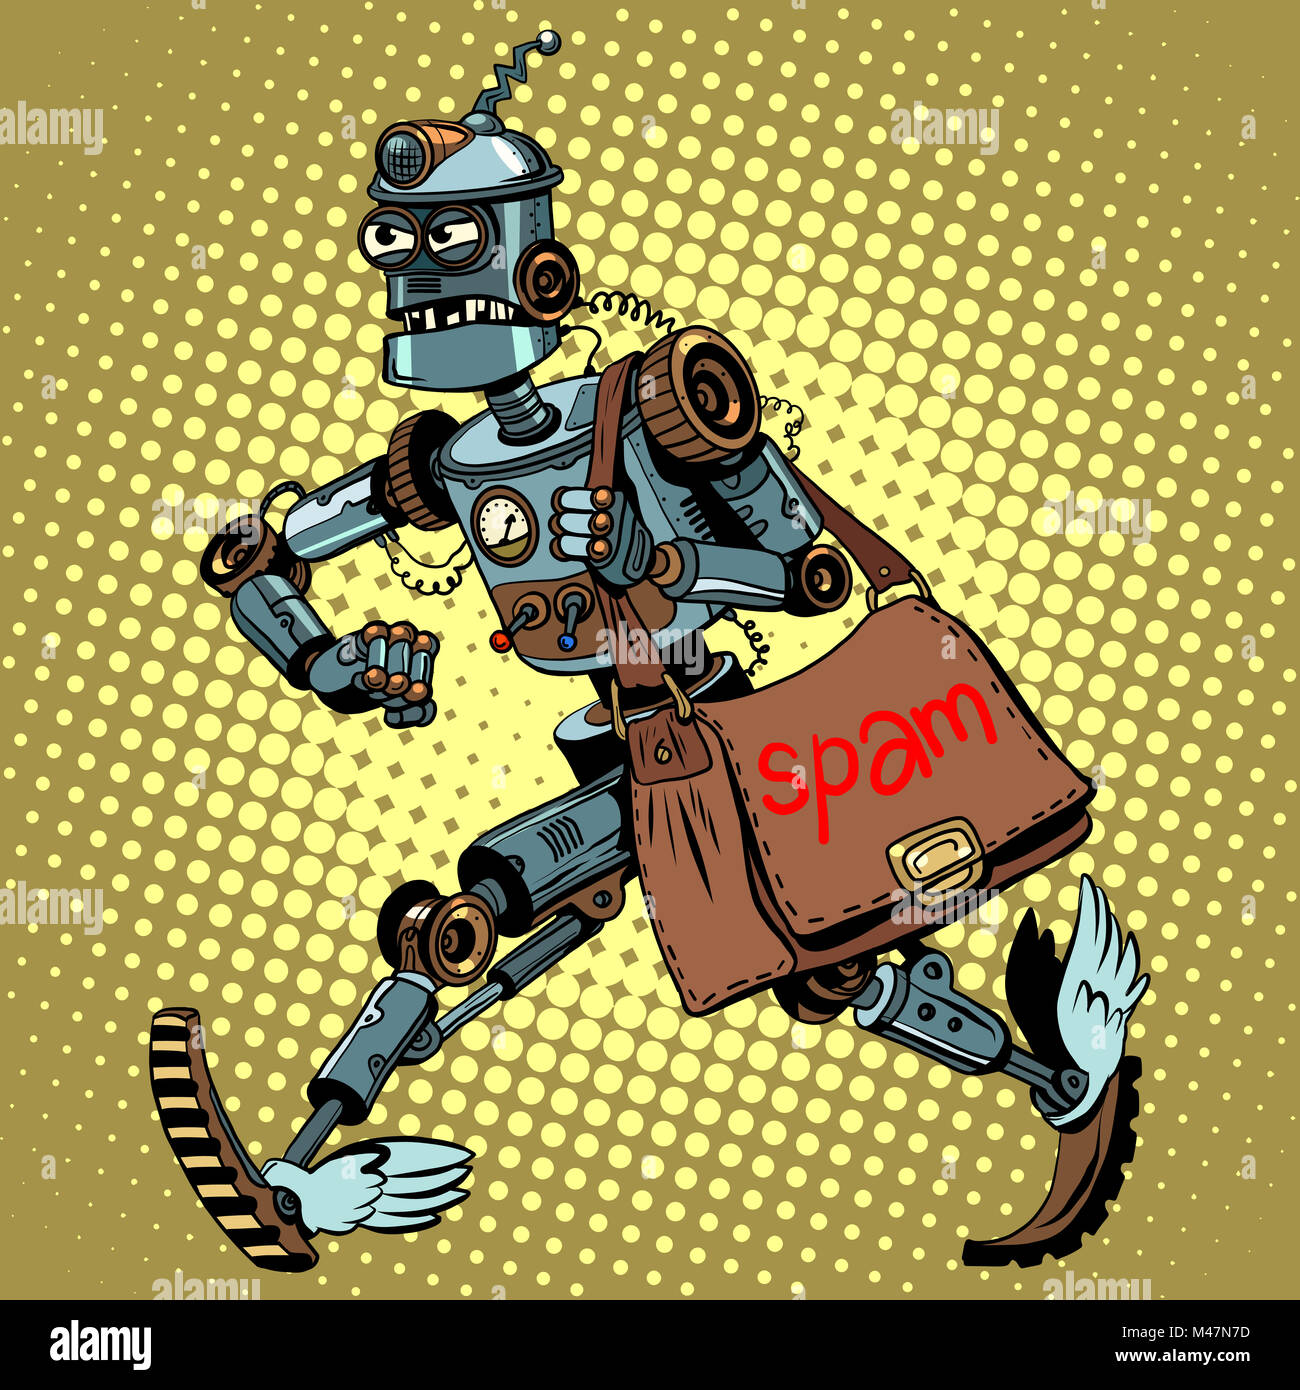 Electronic spam robot postman email - Stock Image